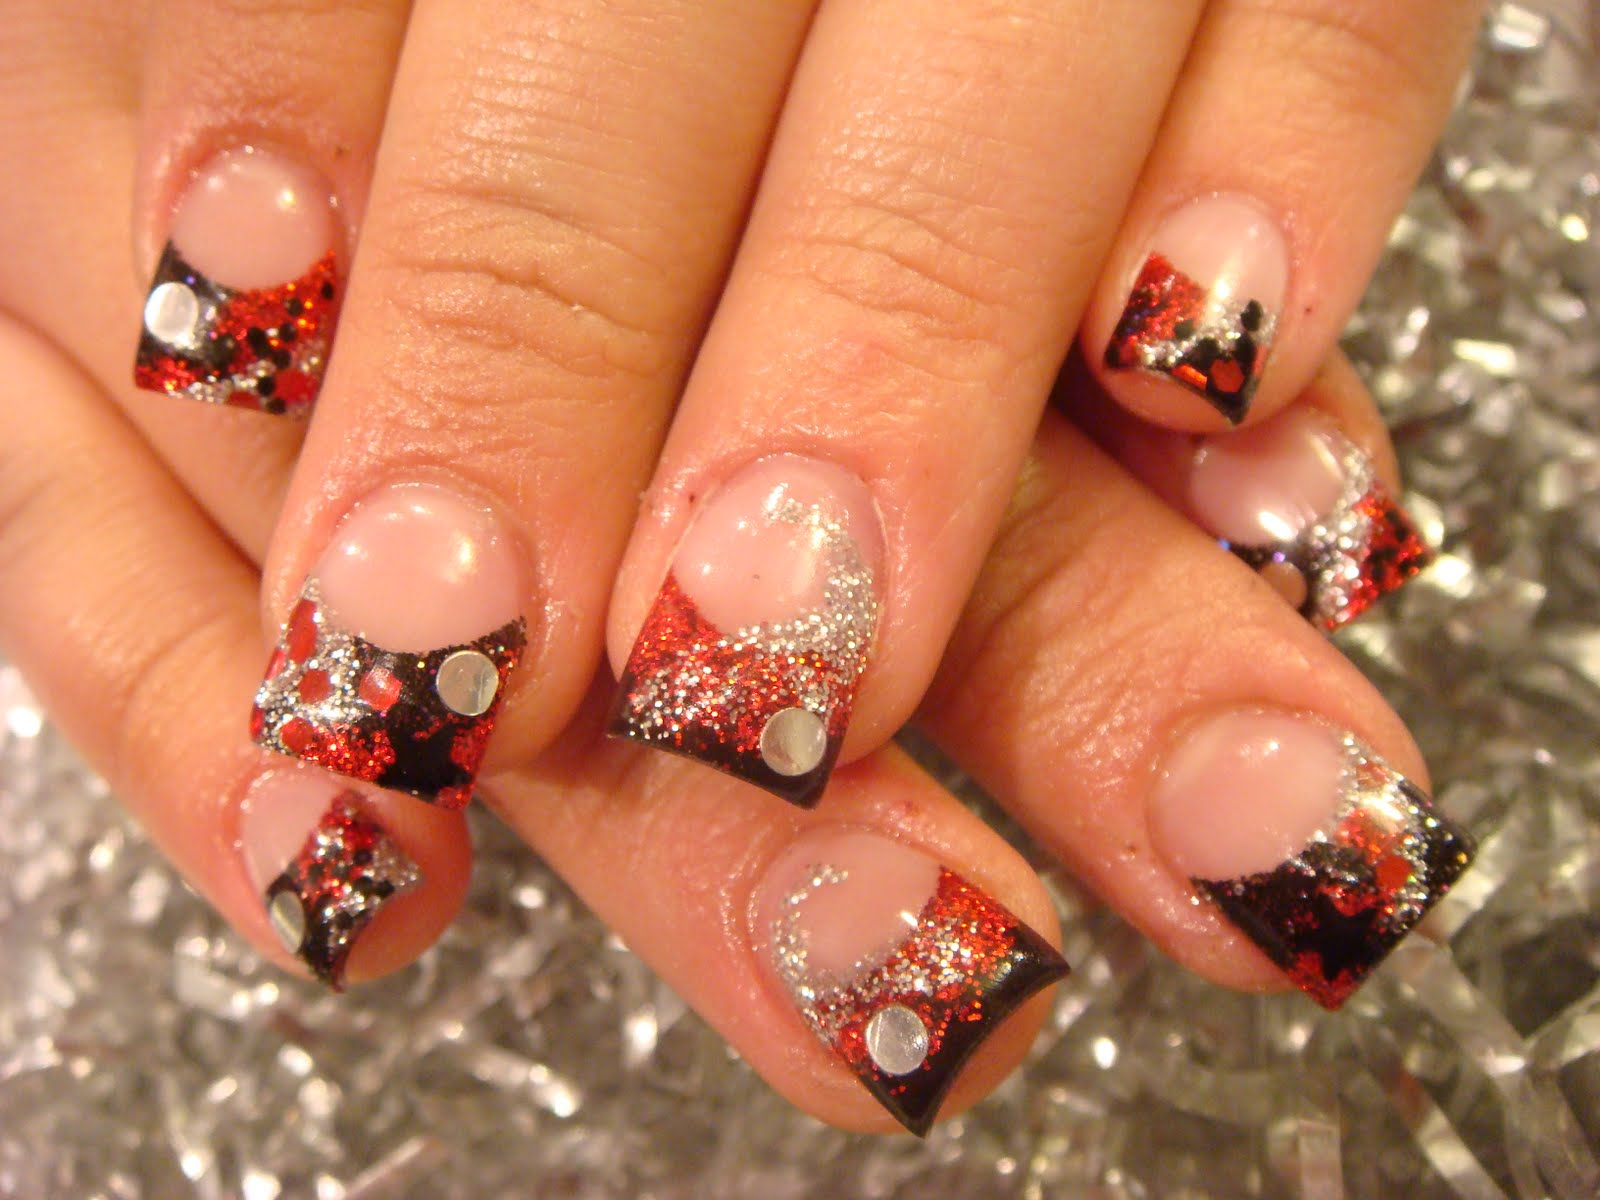 Fall Acrylic Nail Designs http://acrylic-nails.blogspot.com/2010/11/autumn-nails-acrylic-2010.html